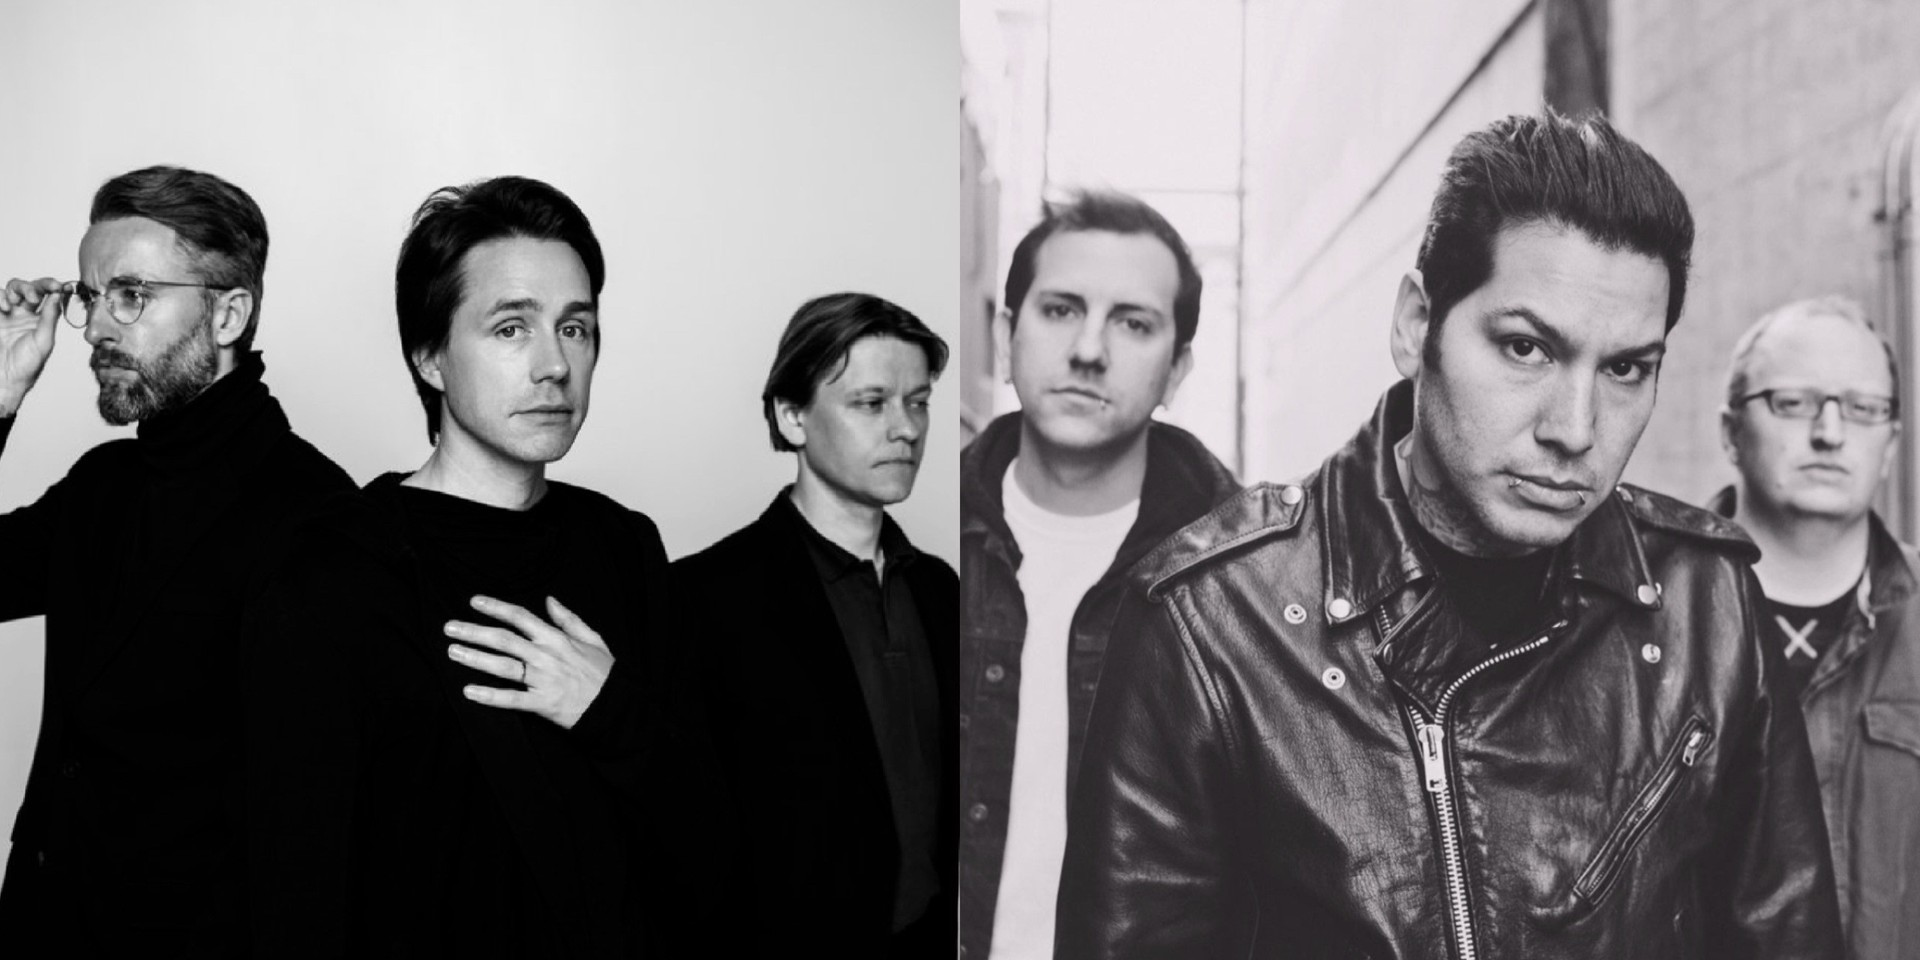 Stellar Fest in Jakarta announces line-up for debut edition – Mew, MxPx and more